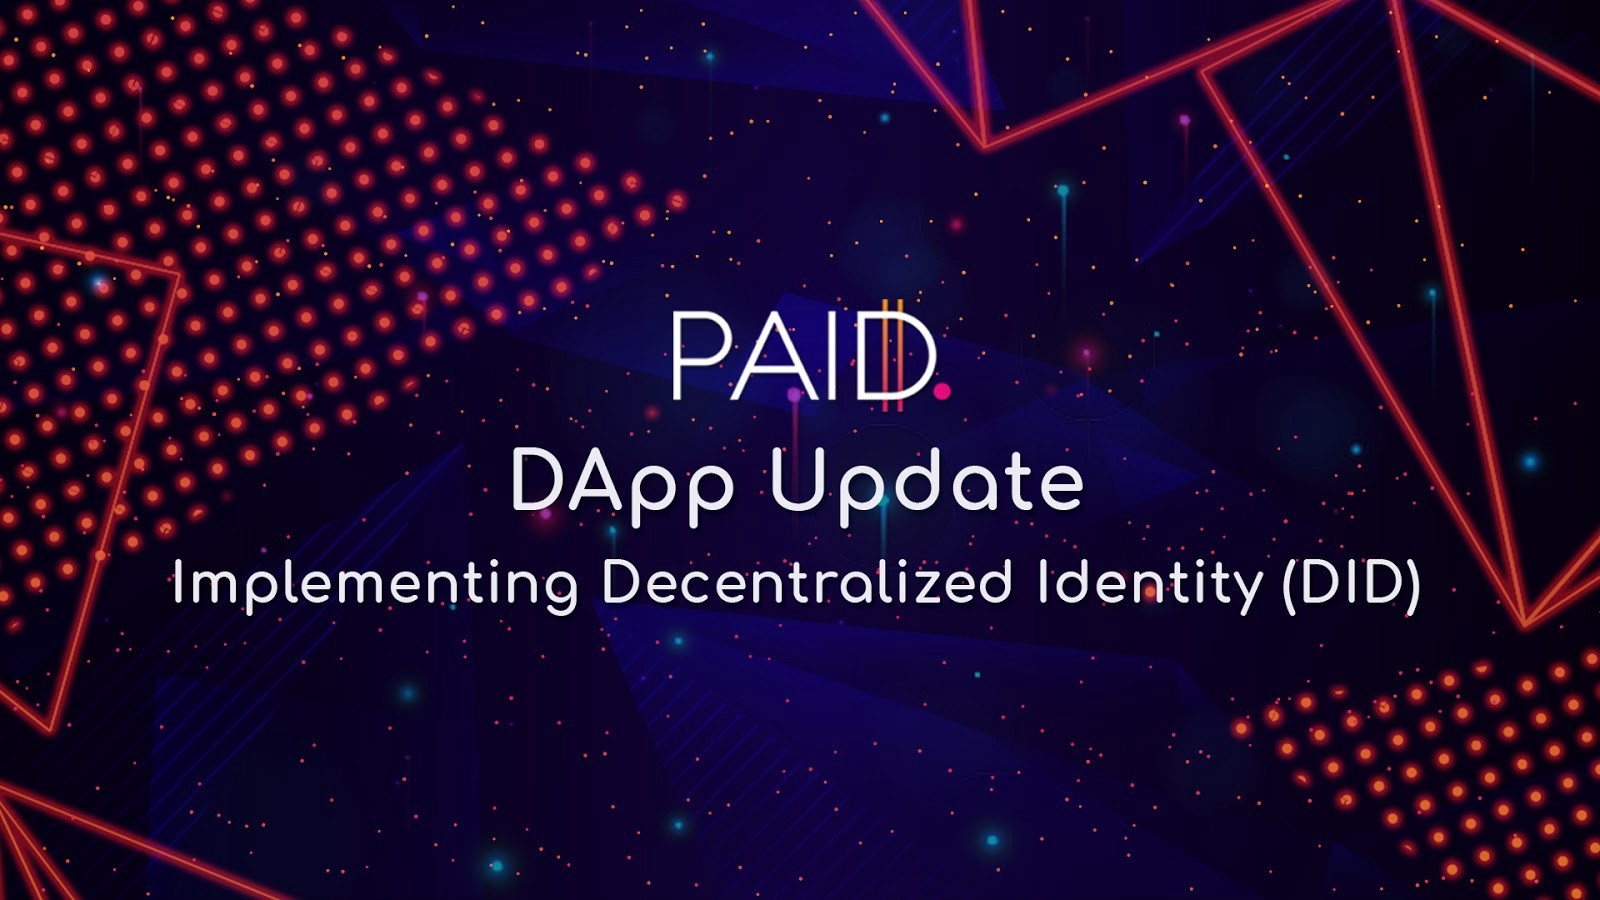 PAID DApp Update: Implementing Decentralized Identity (DID)